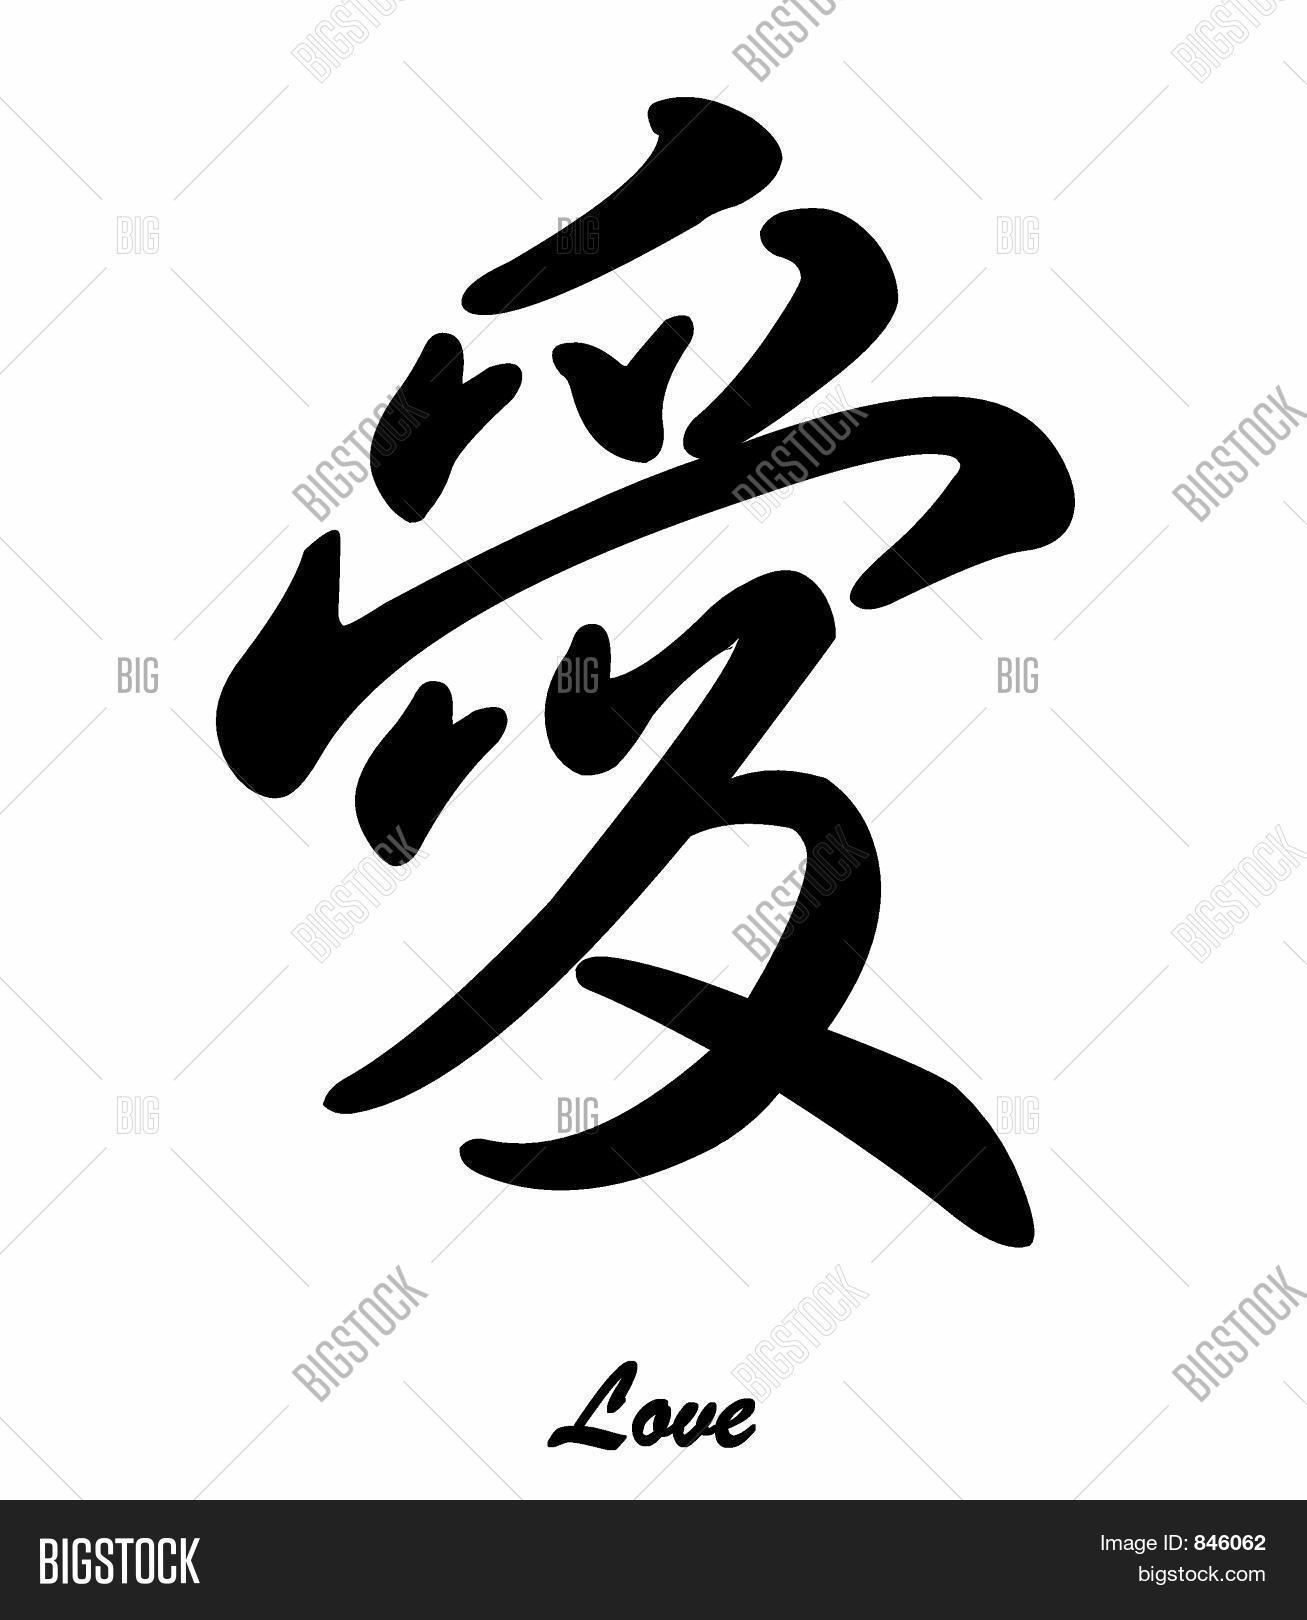 Love chinese character image photo bigstock Japanese calligraphy online